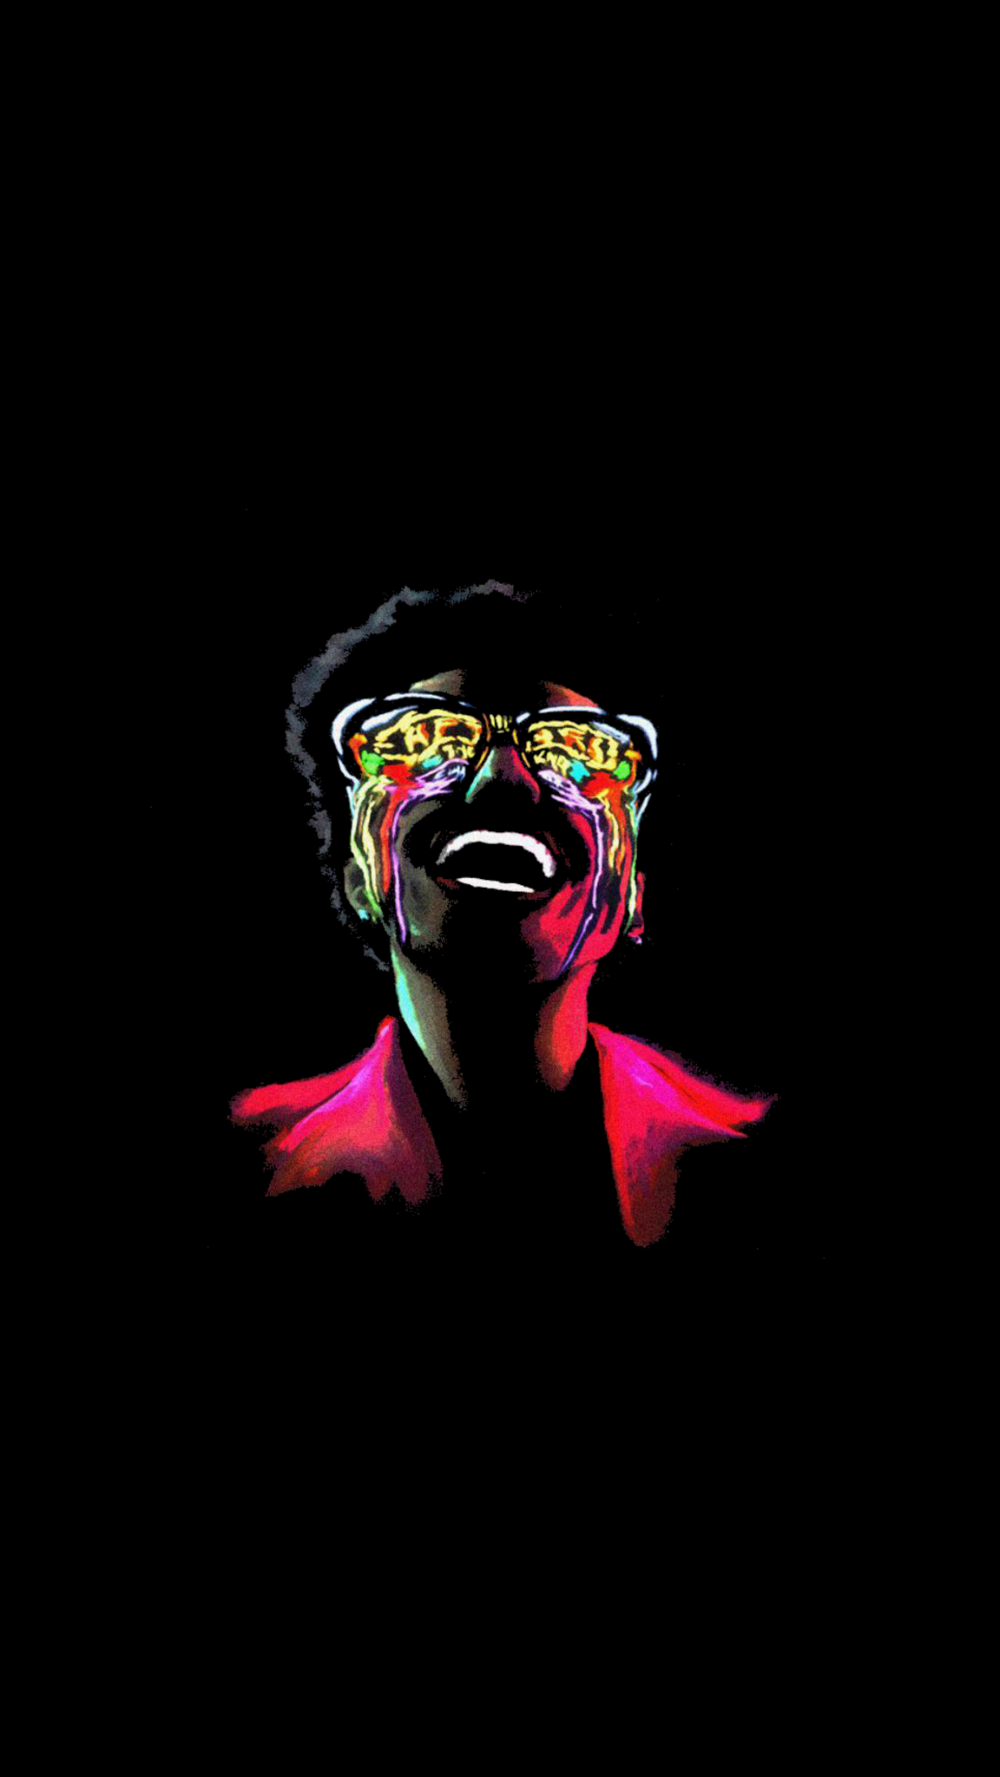 The Weeknd After Hours Amoled Mobile Wallpapers 2160x3840 Album On Imgur The Weeknd Background The Weeknd Poster The Weeknd Wallpaper Iphone